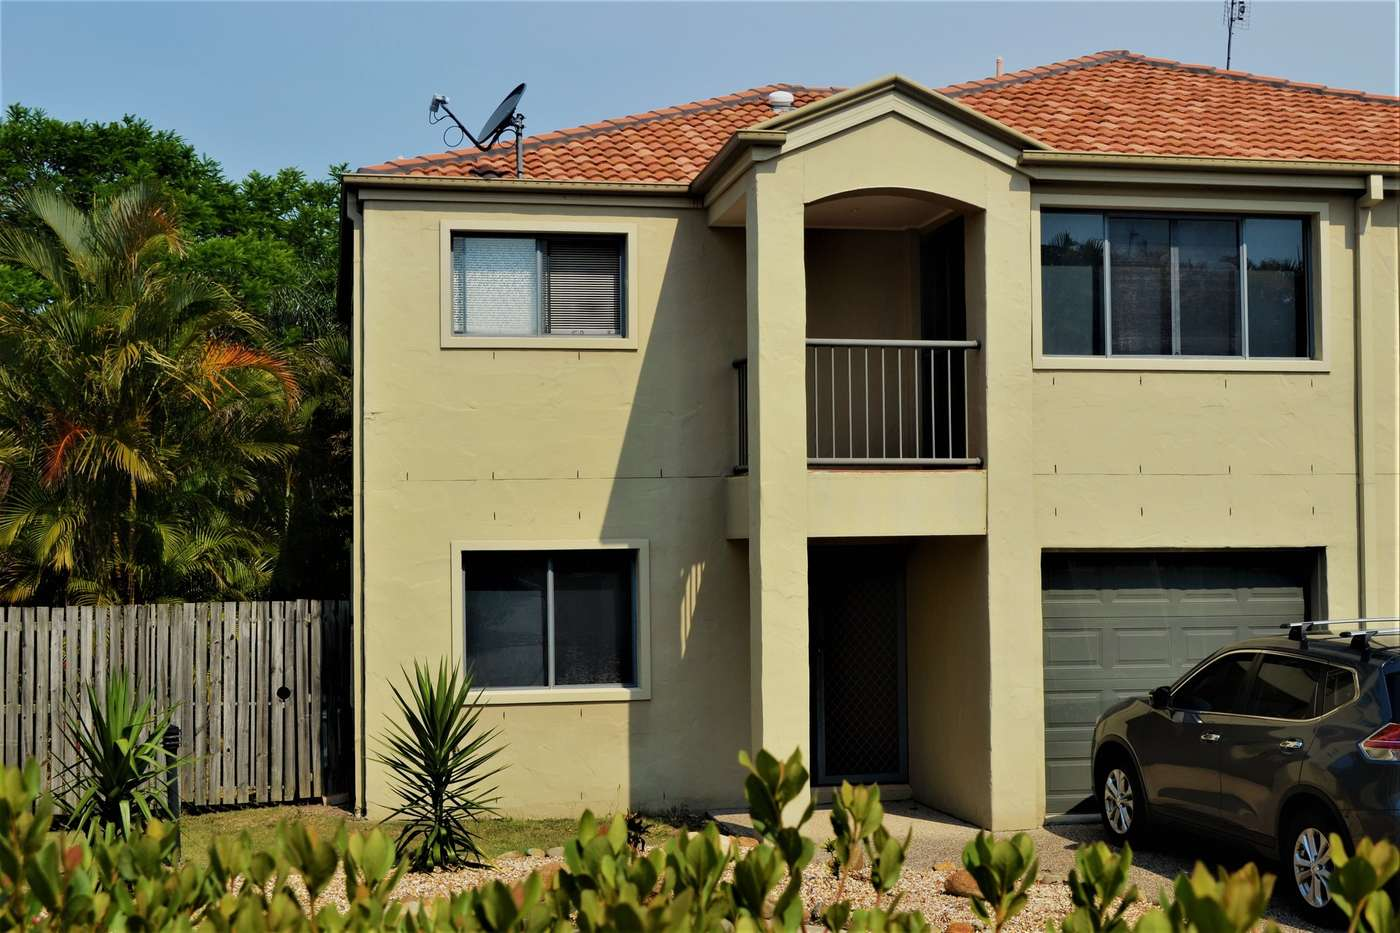 Main view of Homely townhouse listing, 1-15 Santa Isobel Blvd, Pacific Pines, QLD 4211